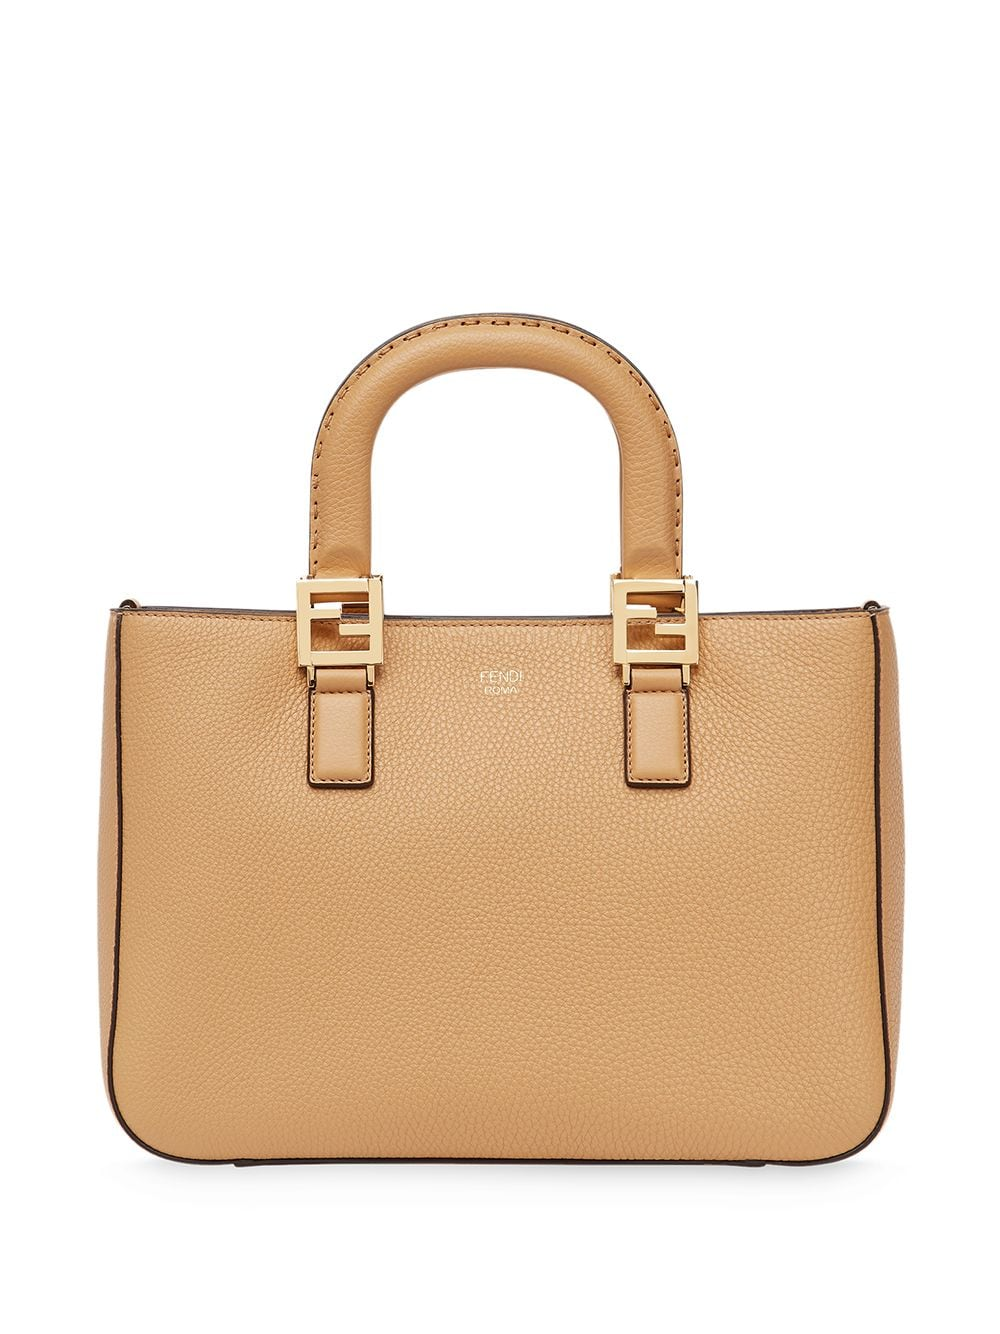 Ff Small Leather Tote Bag